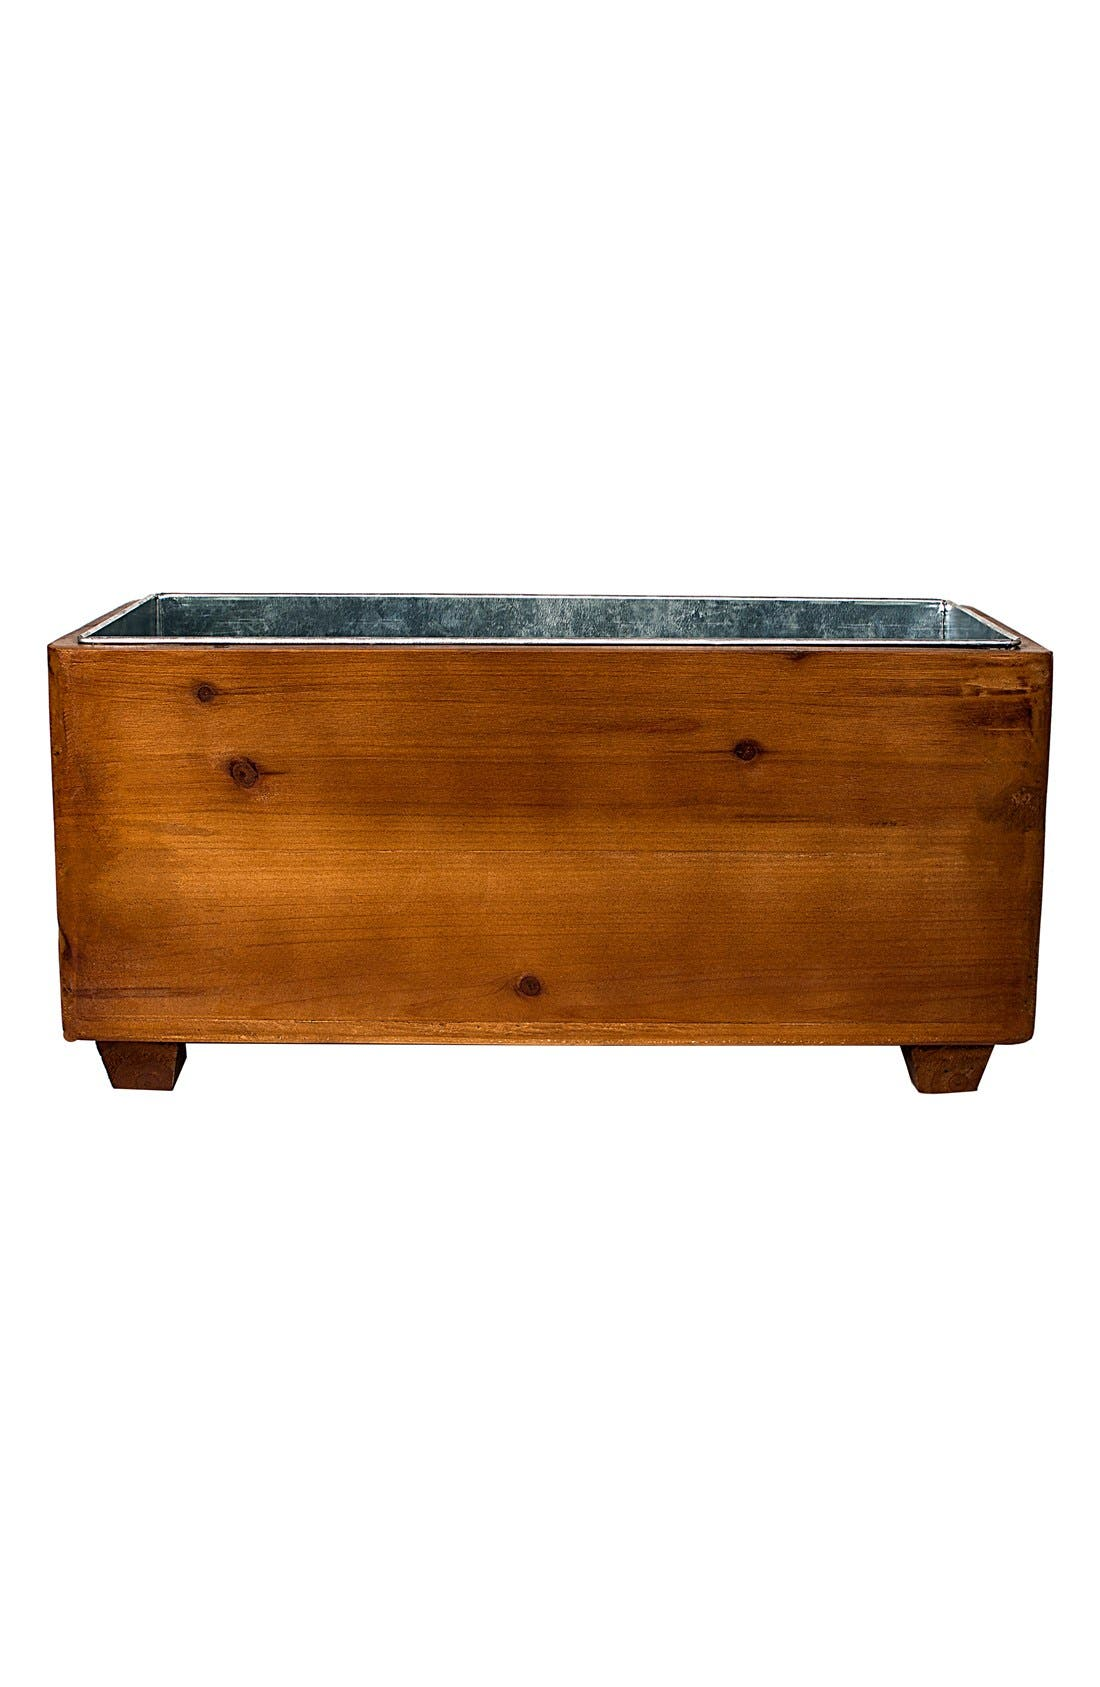 Monogram Wood Wine Trough,                             Main thumbnail 1, color,                             200